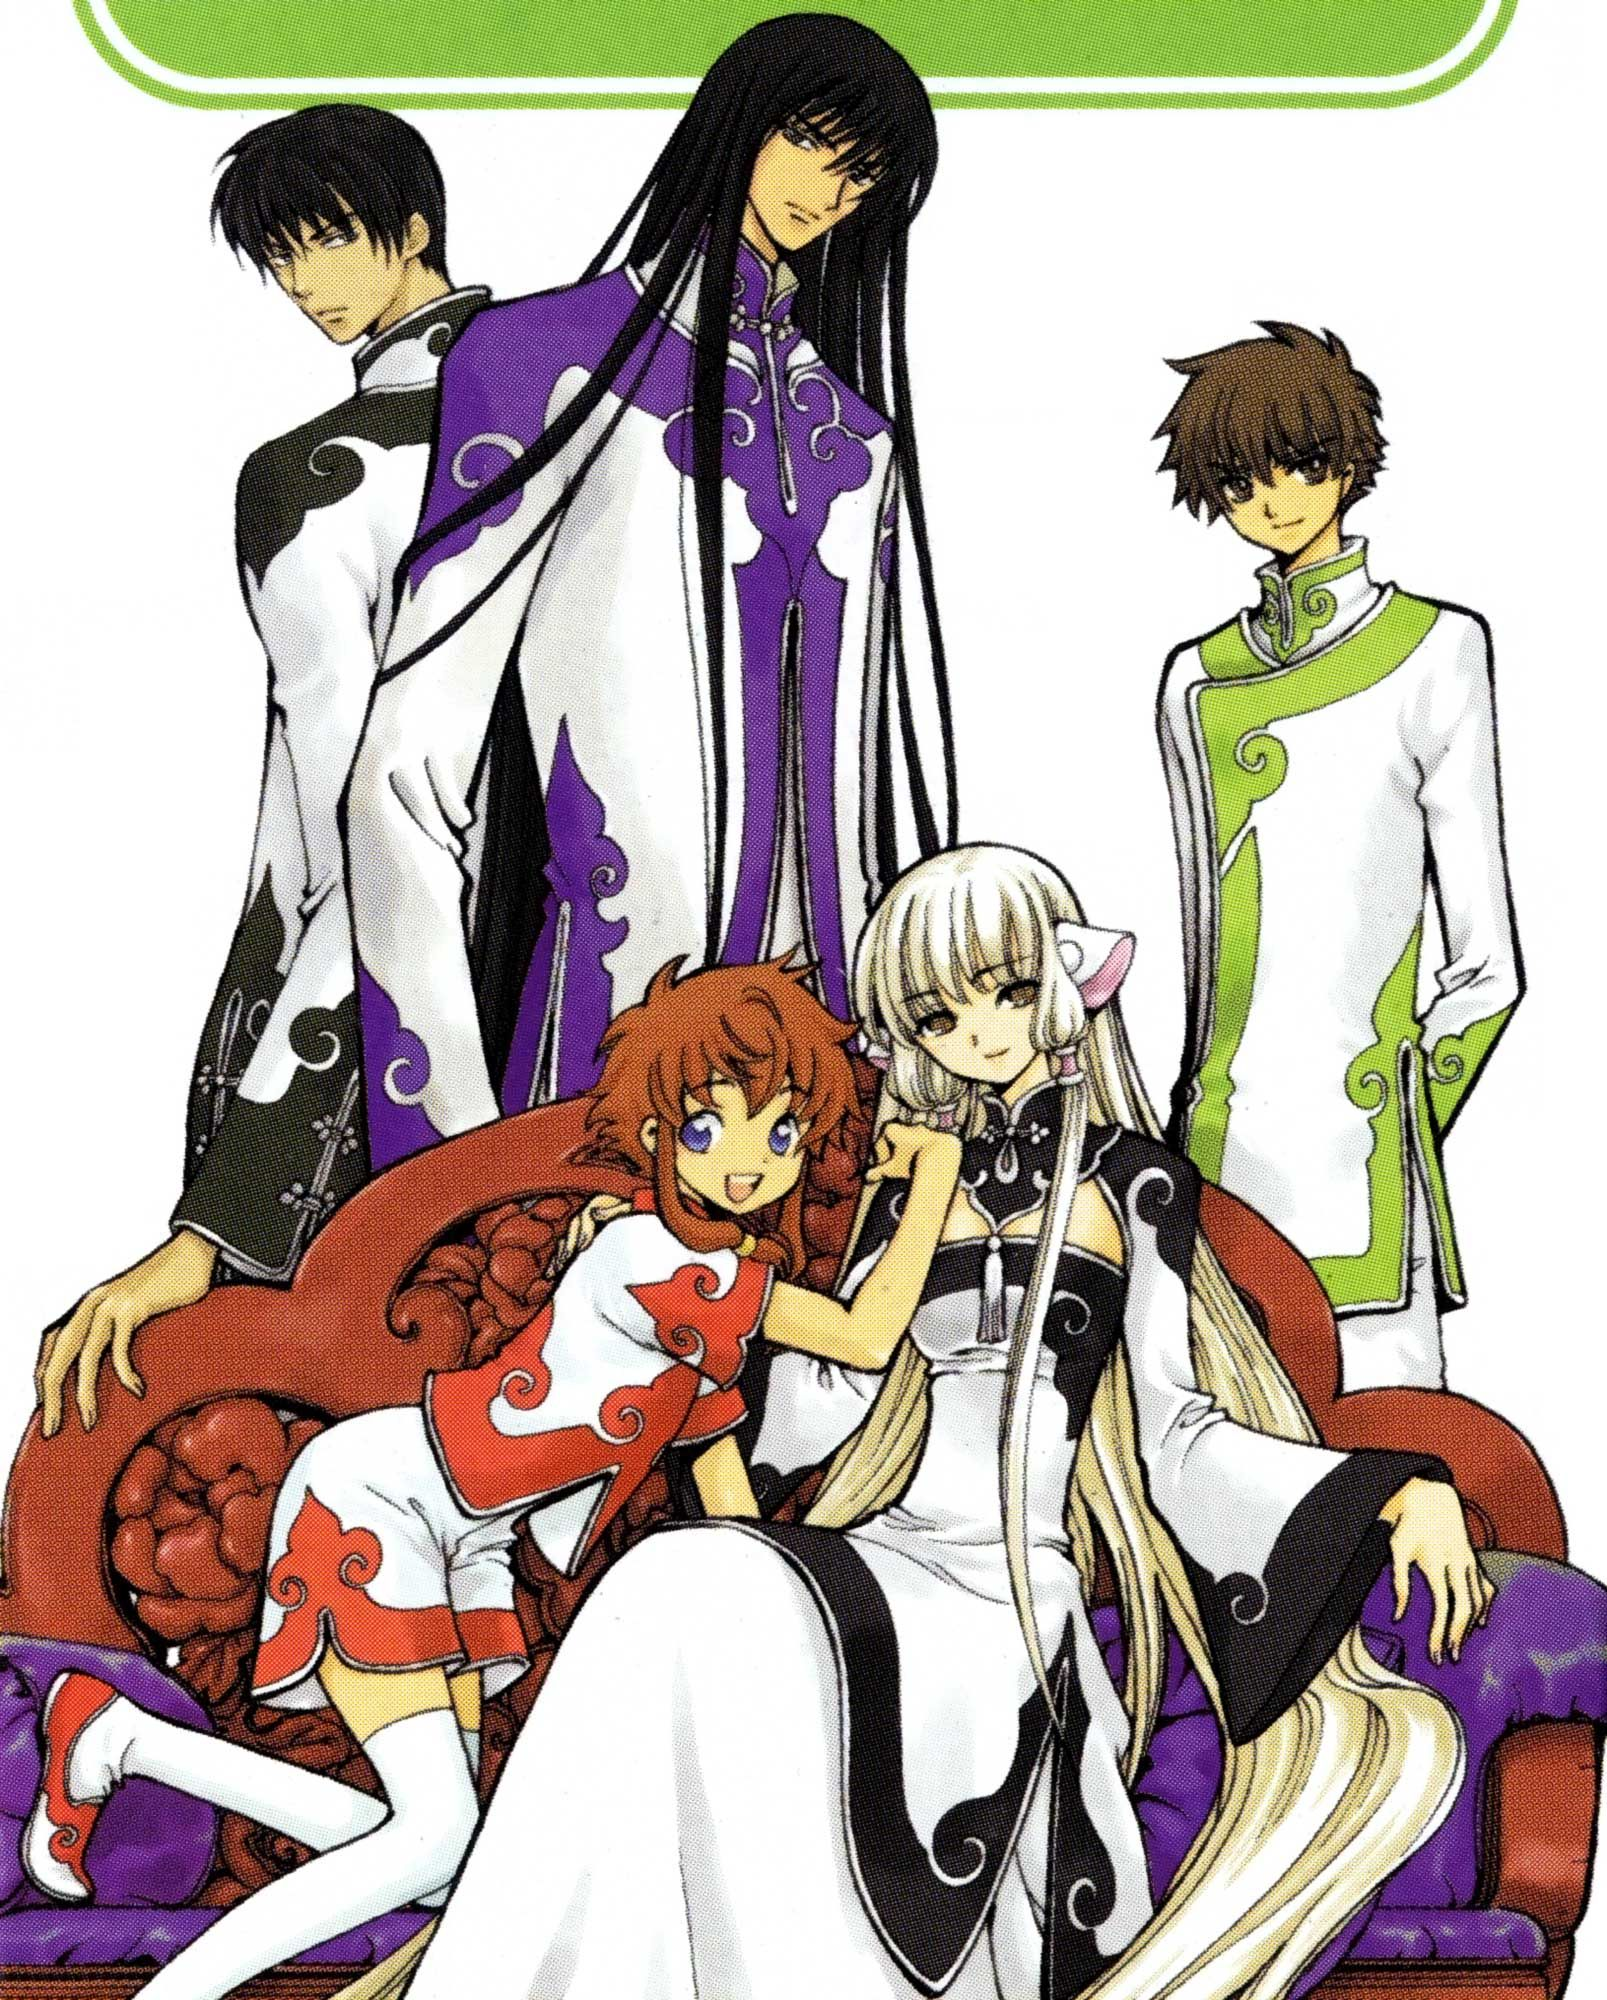 Tags: Tsubasa: RESERVoir CHRoNiCLE, CLAMP, Chobits, Freya